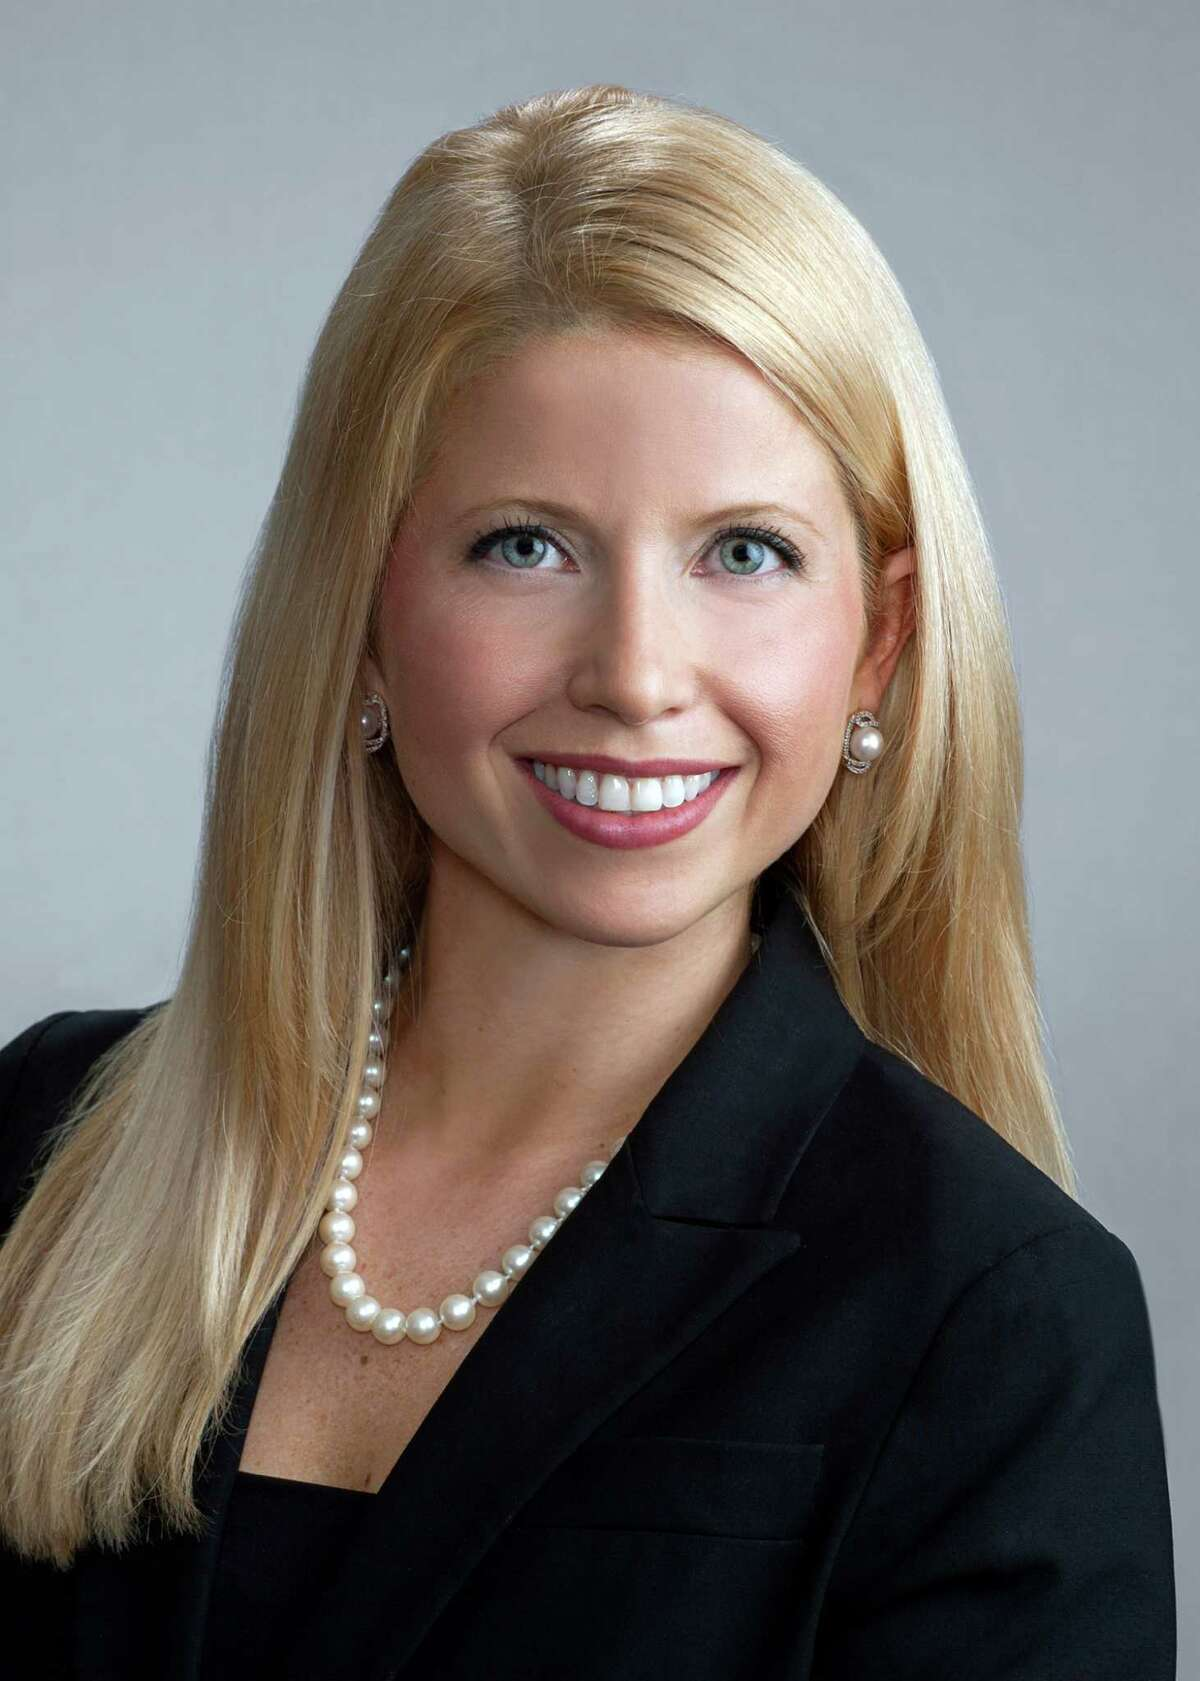 Reed Smith announced the promotion of Susan Ormand Berry, a member of the firmÂ?'s financial industry group, to partner. Her practice focuses on structured finance, mergers and acquisitions, and general corporate matters.